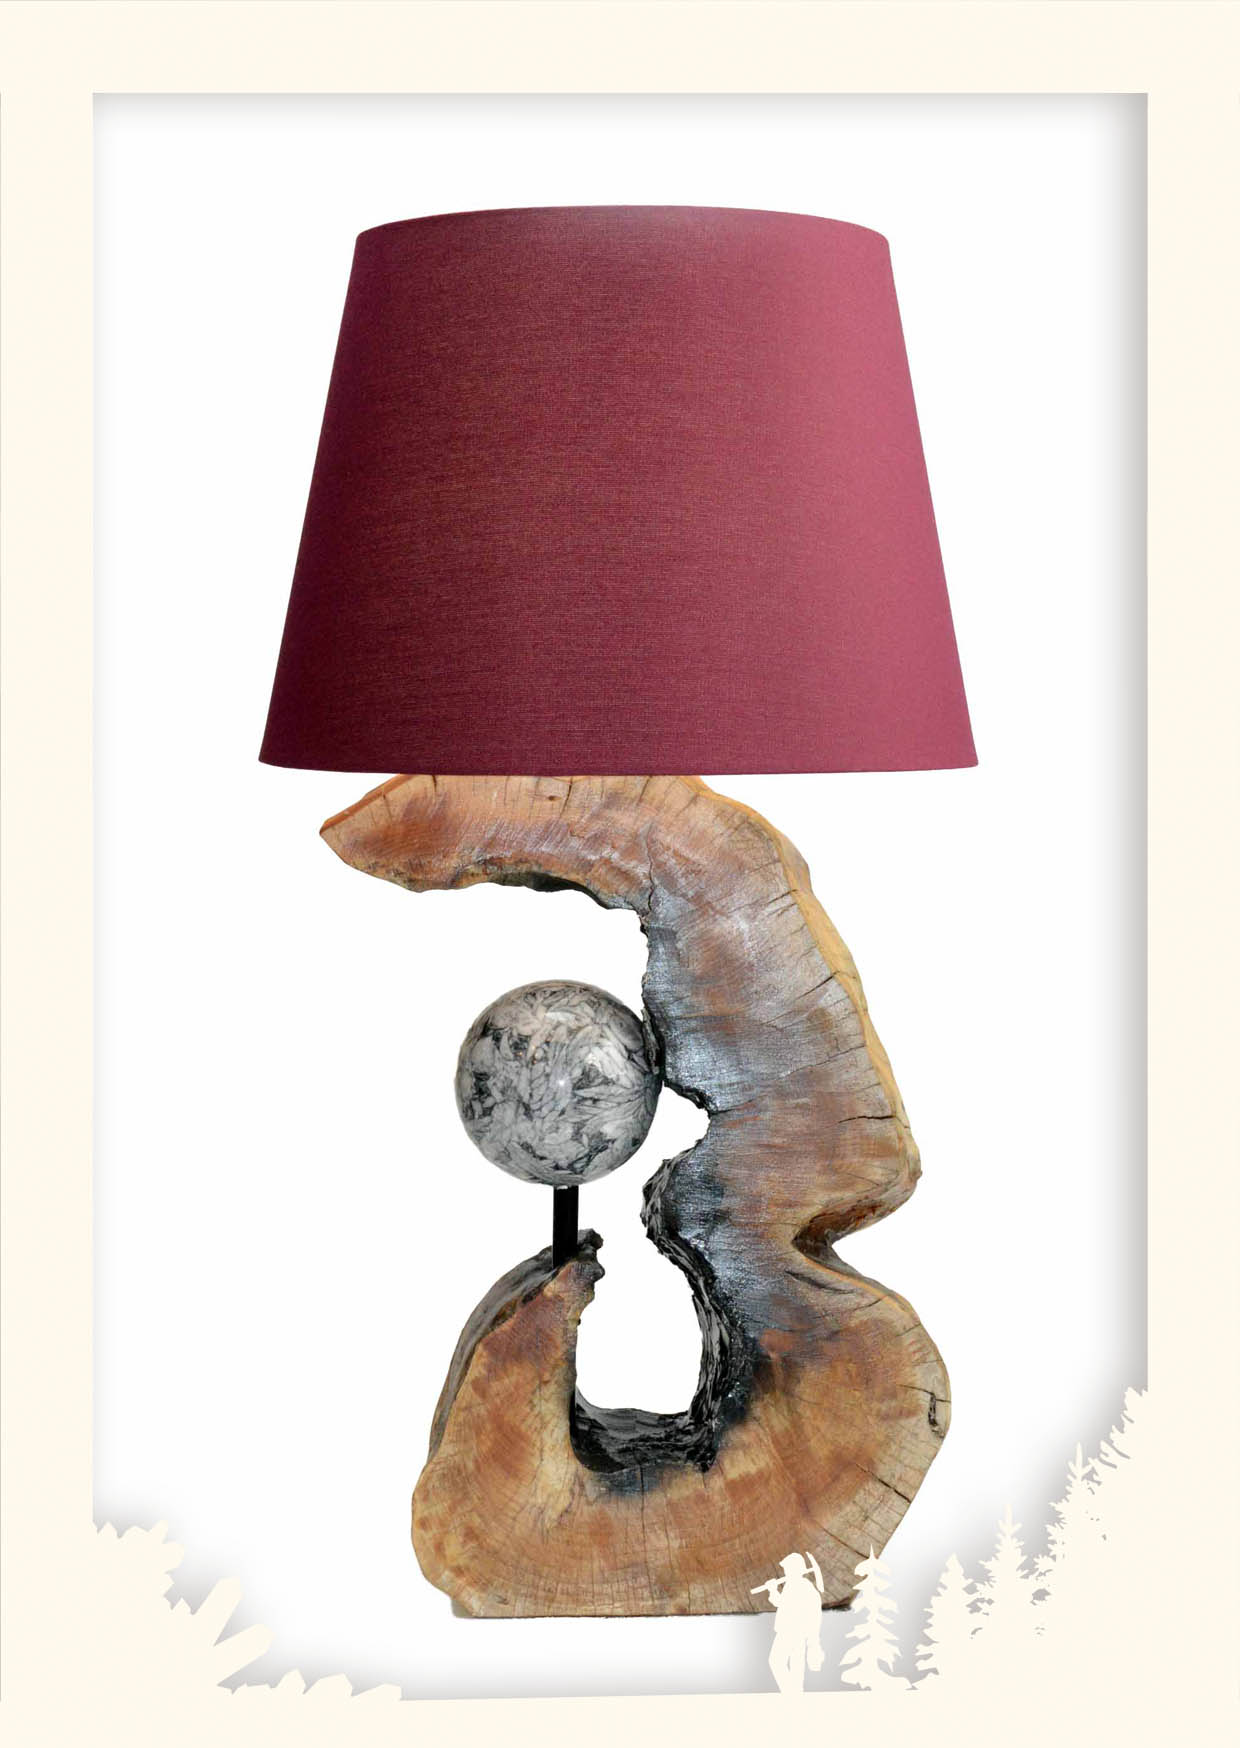 Lampen Holz & Stein Image